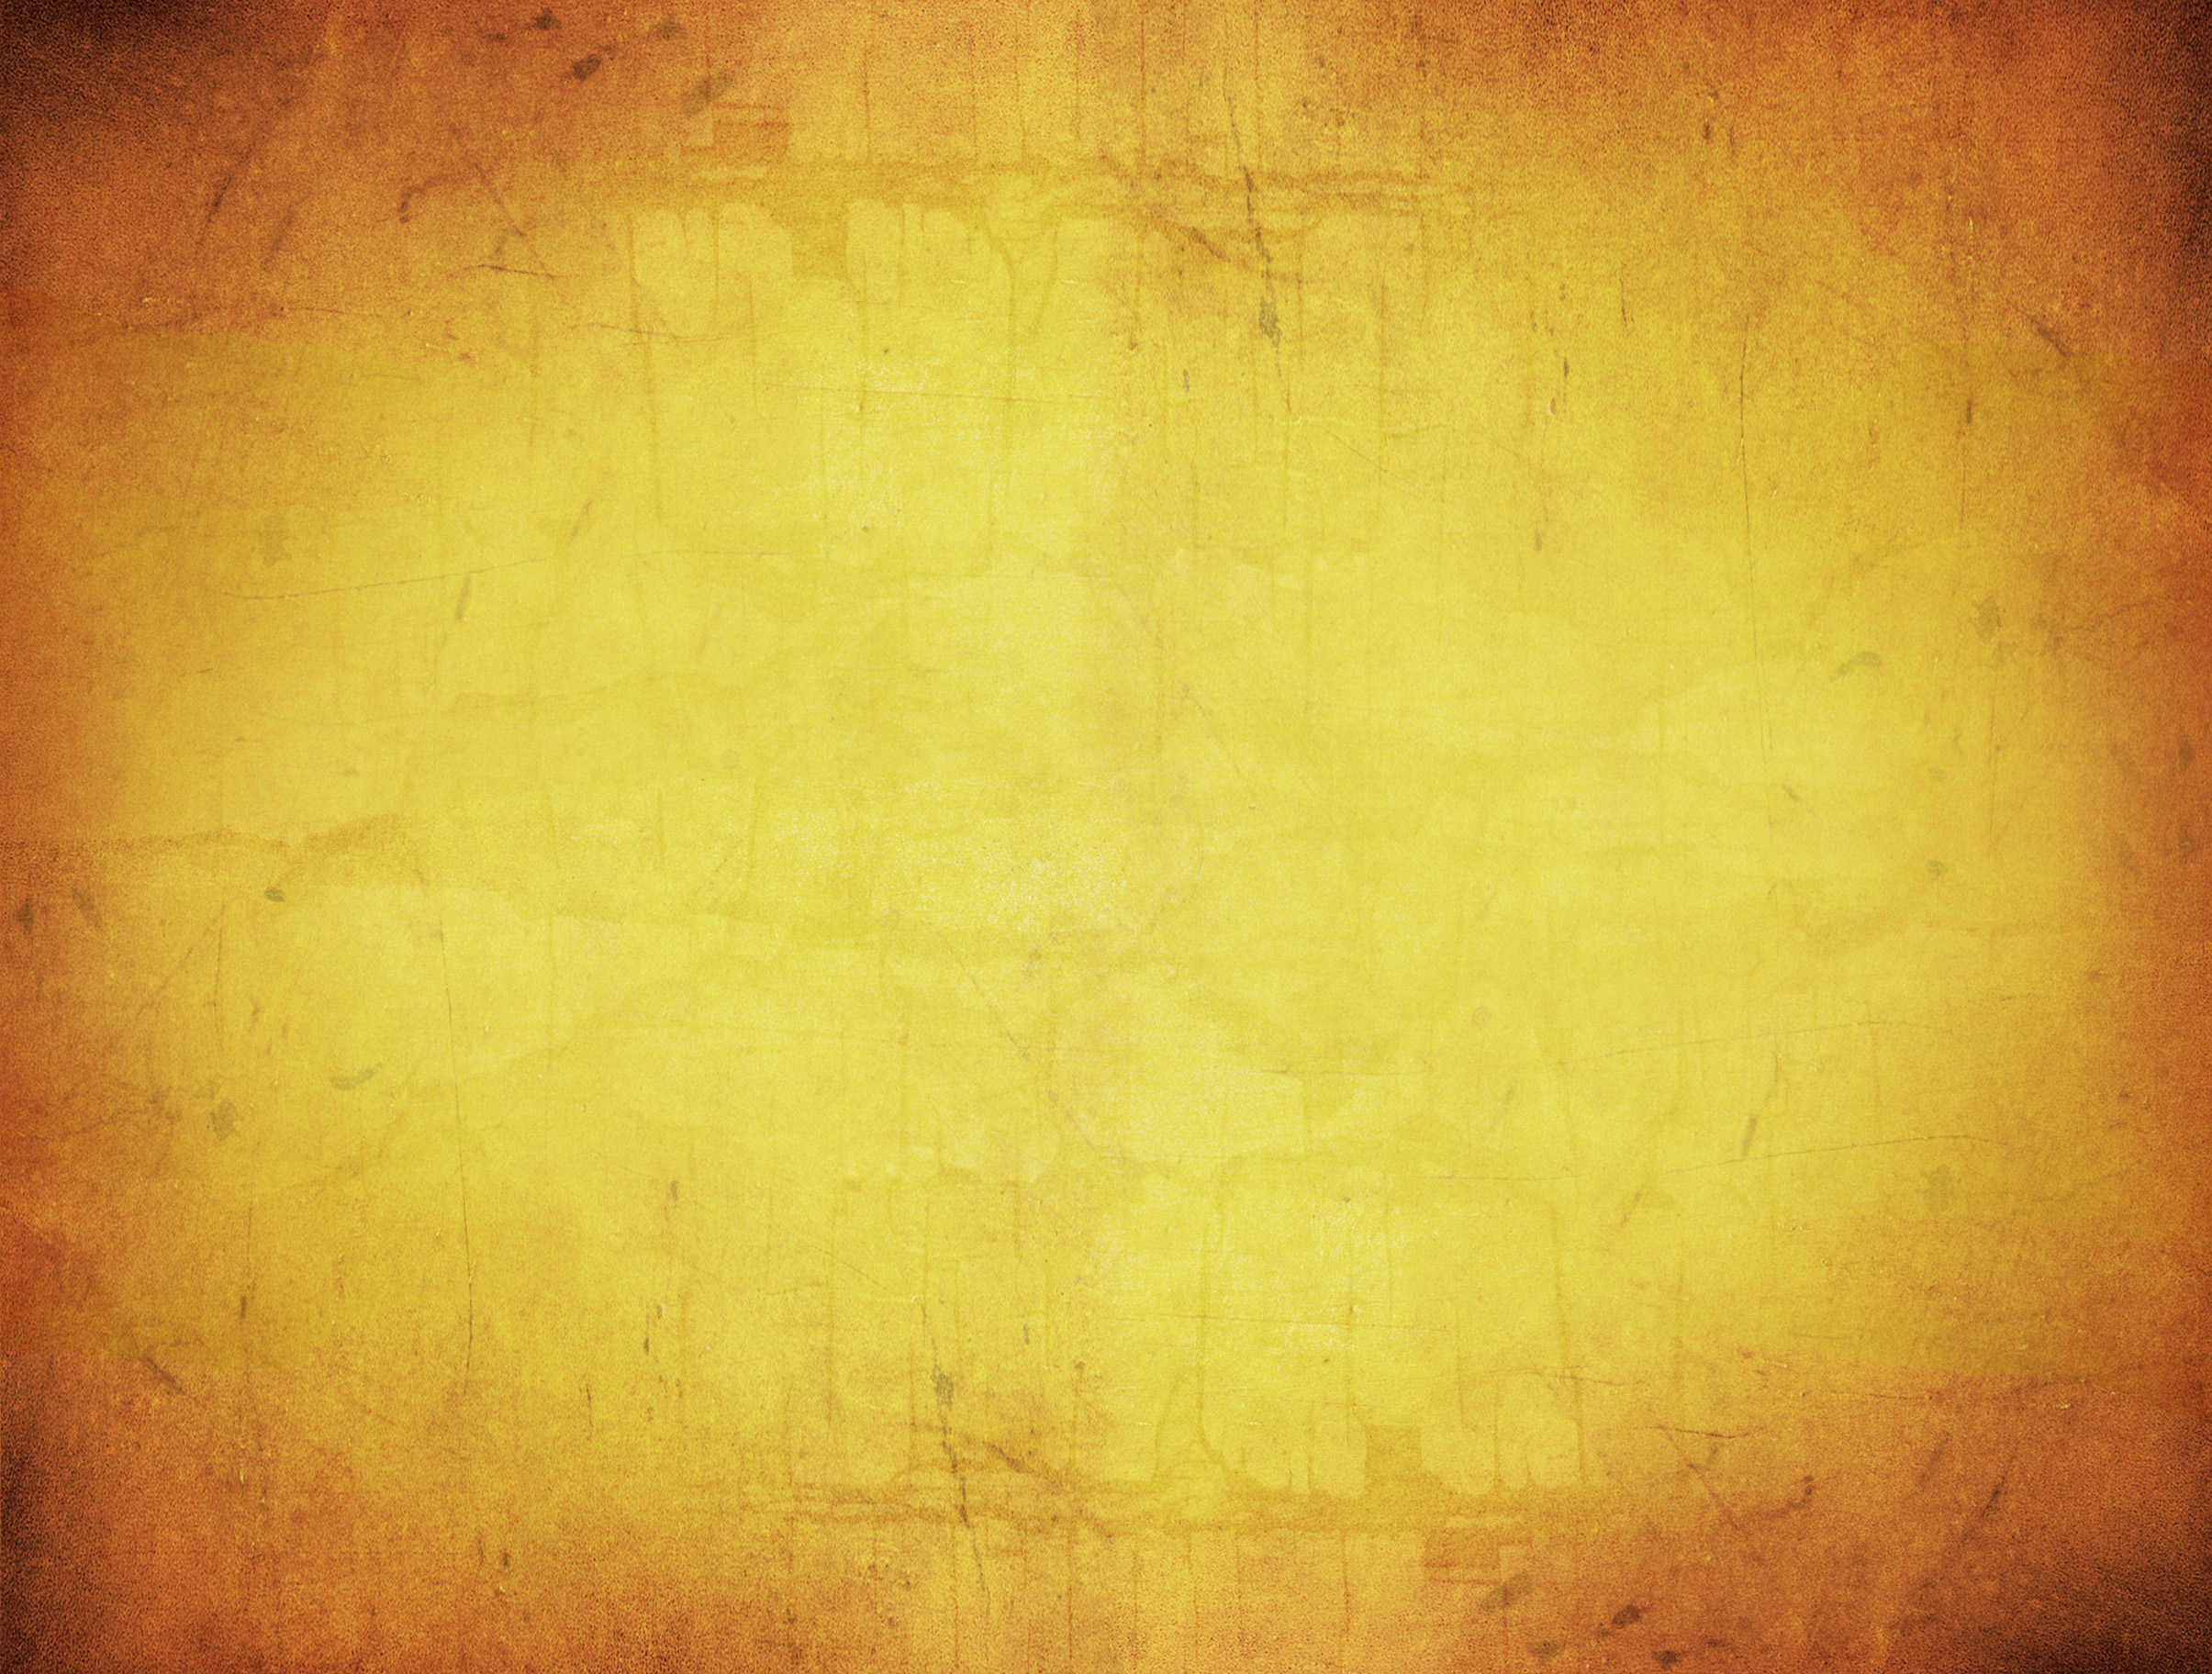 Old paper grunge texture background - warm colors photo